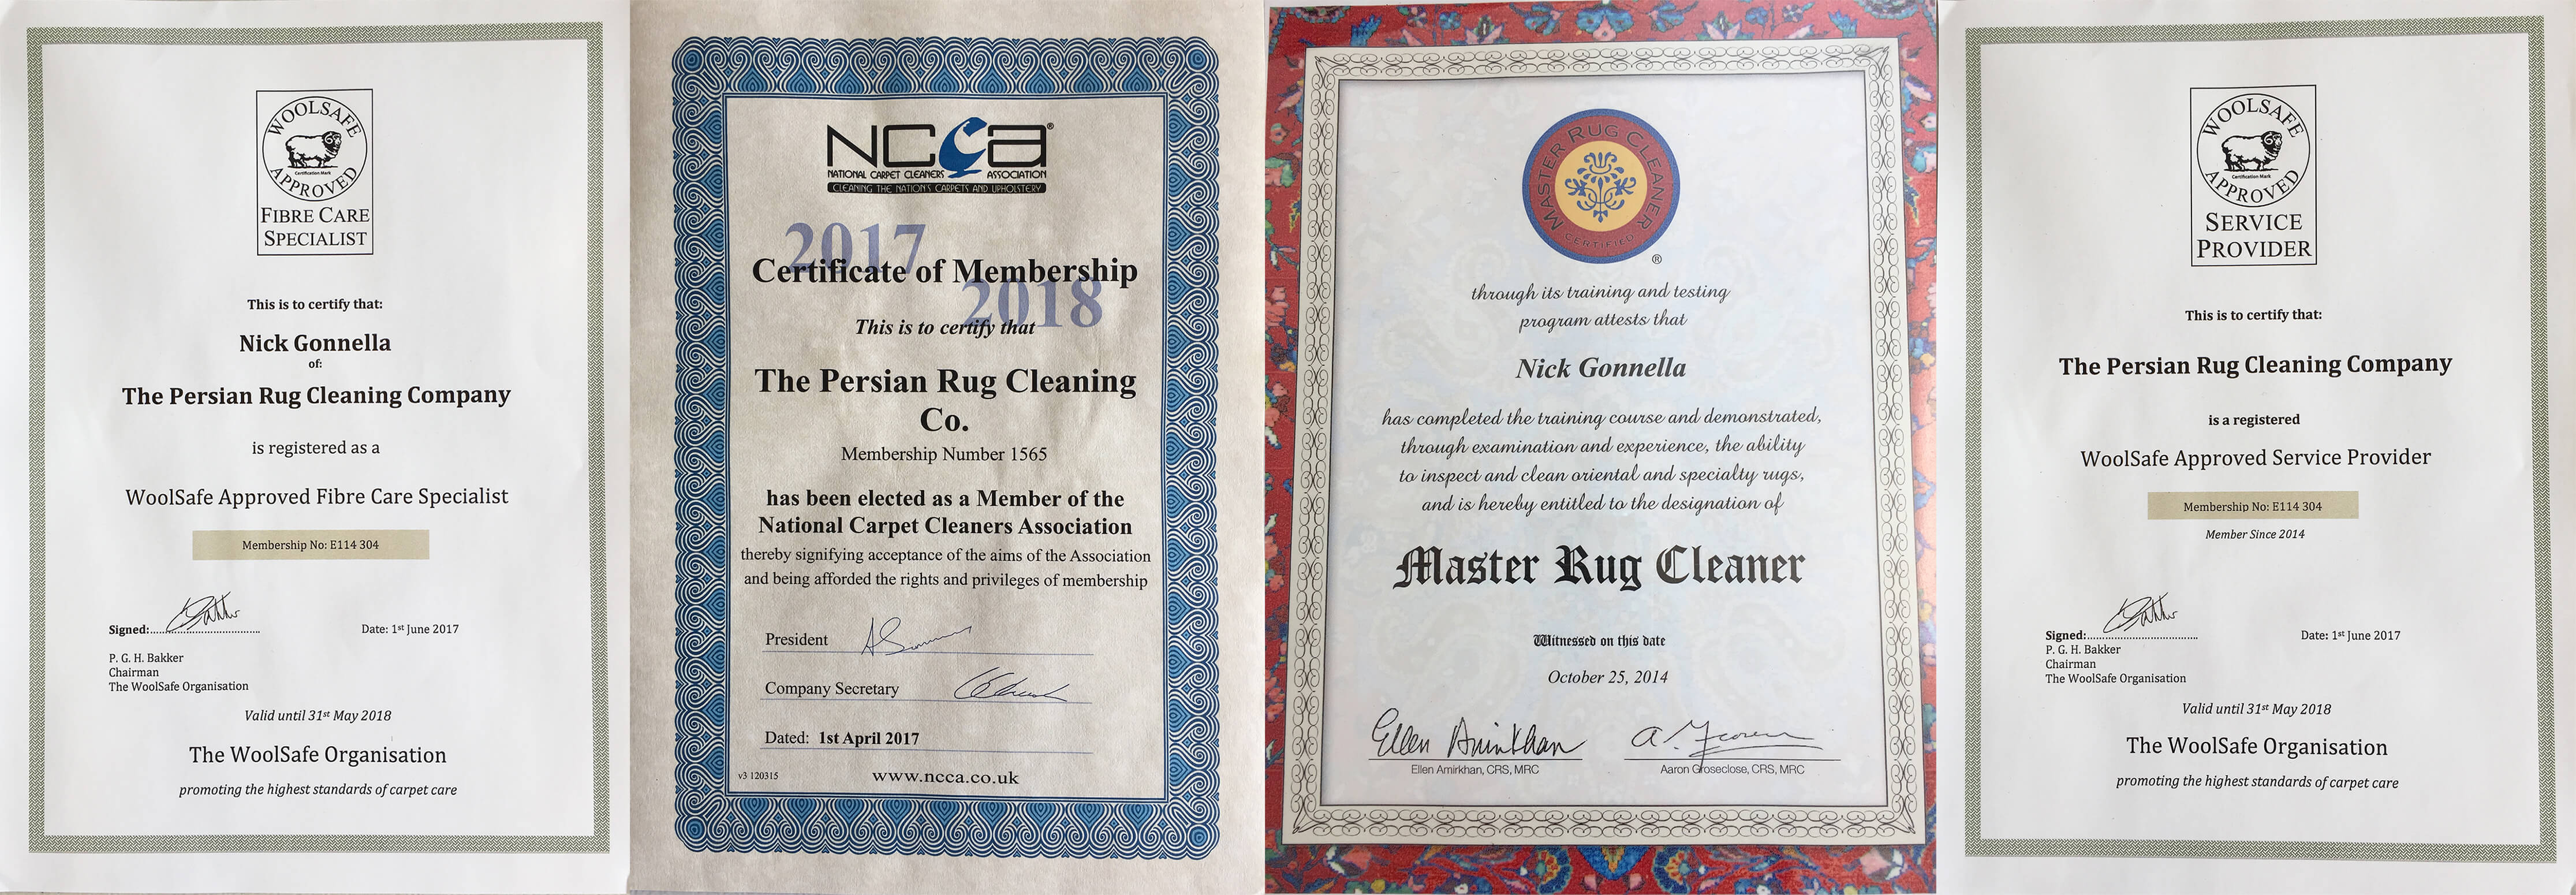 Persian Rug Cleaning Industry Certificates